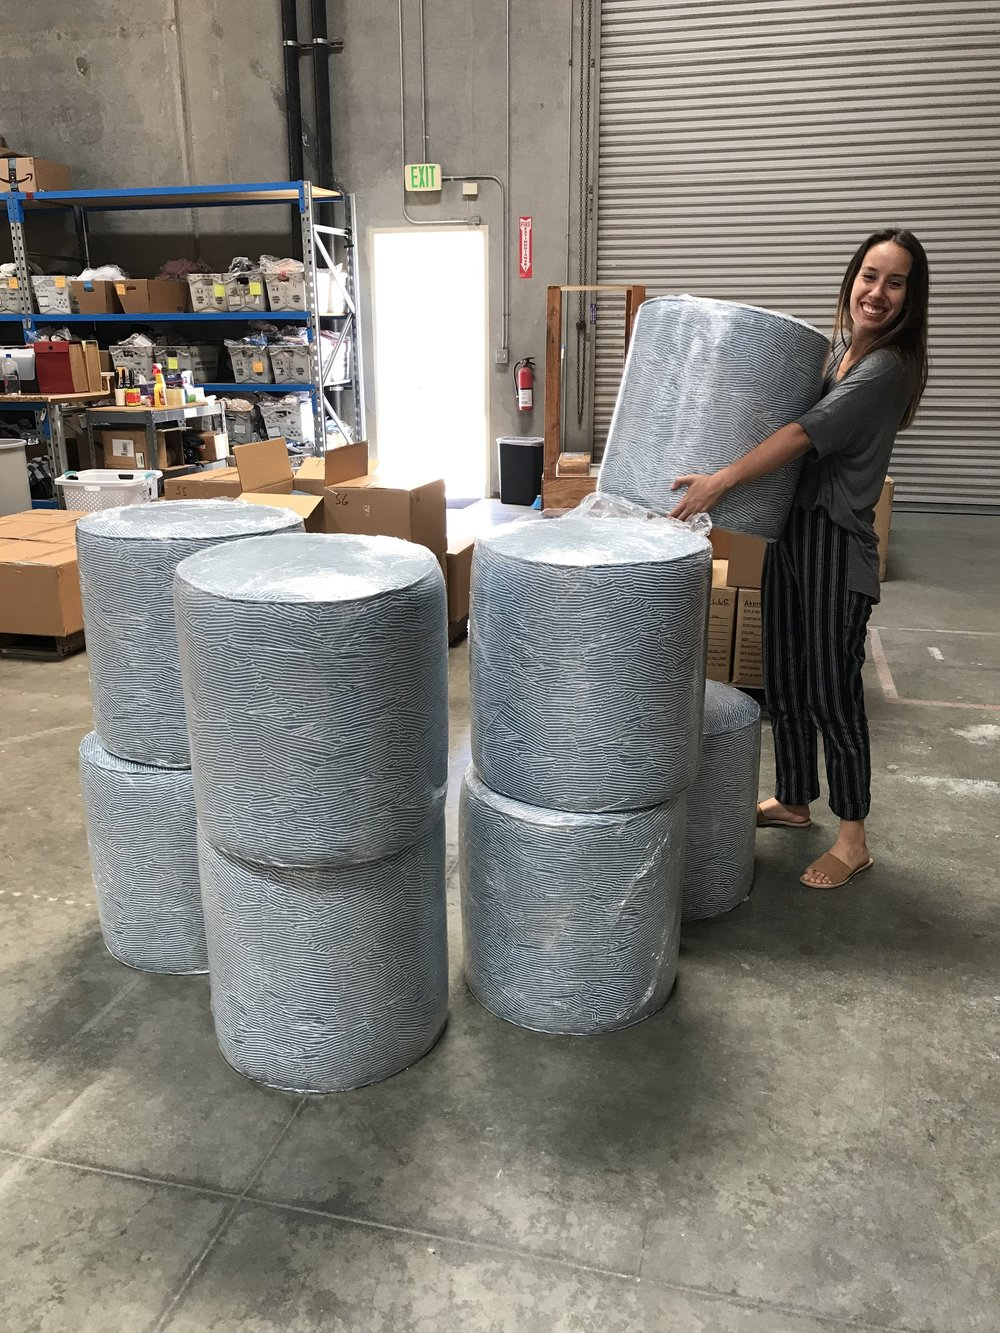 our designer katie helping drop off custom ottomans being used in the office and around the entire space.